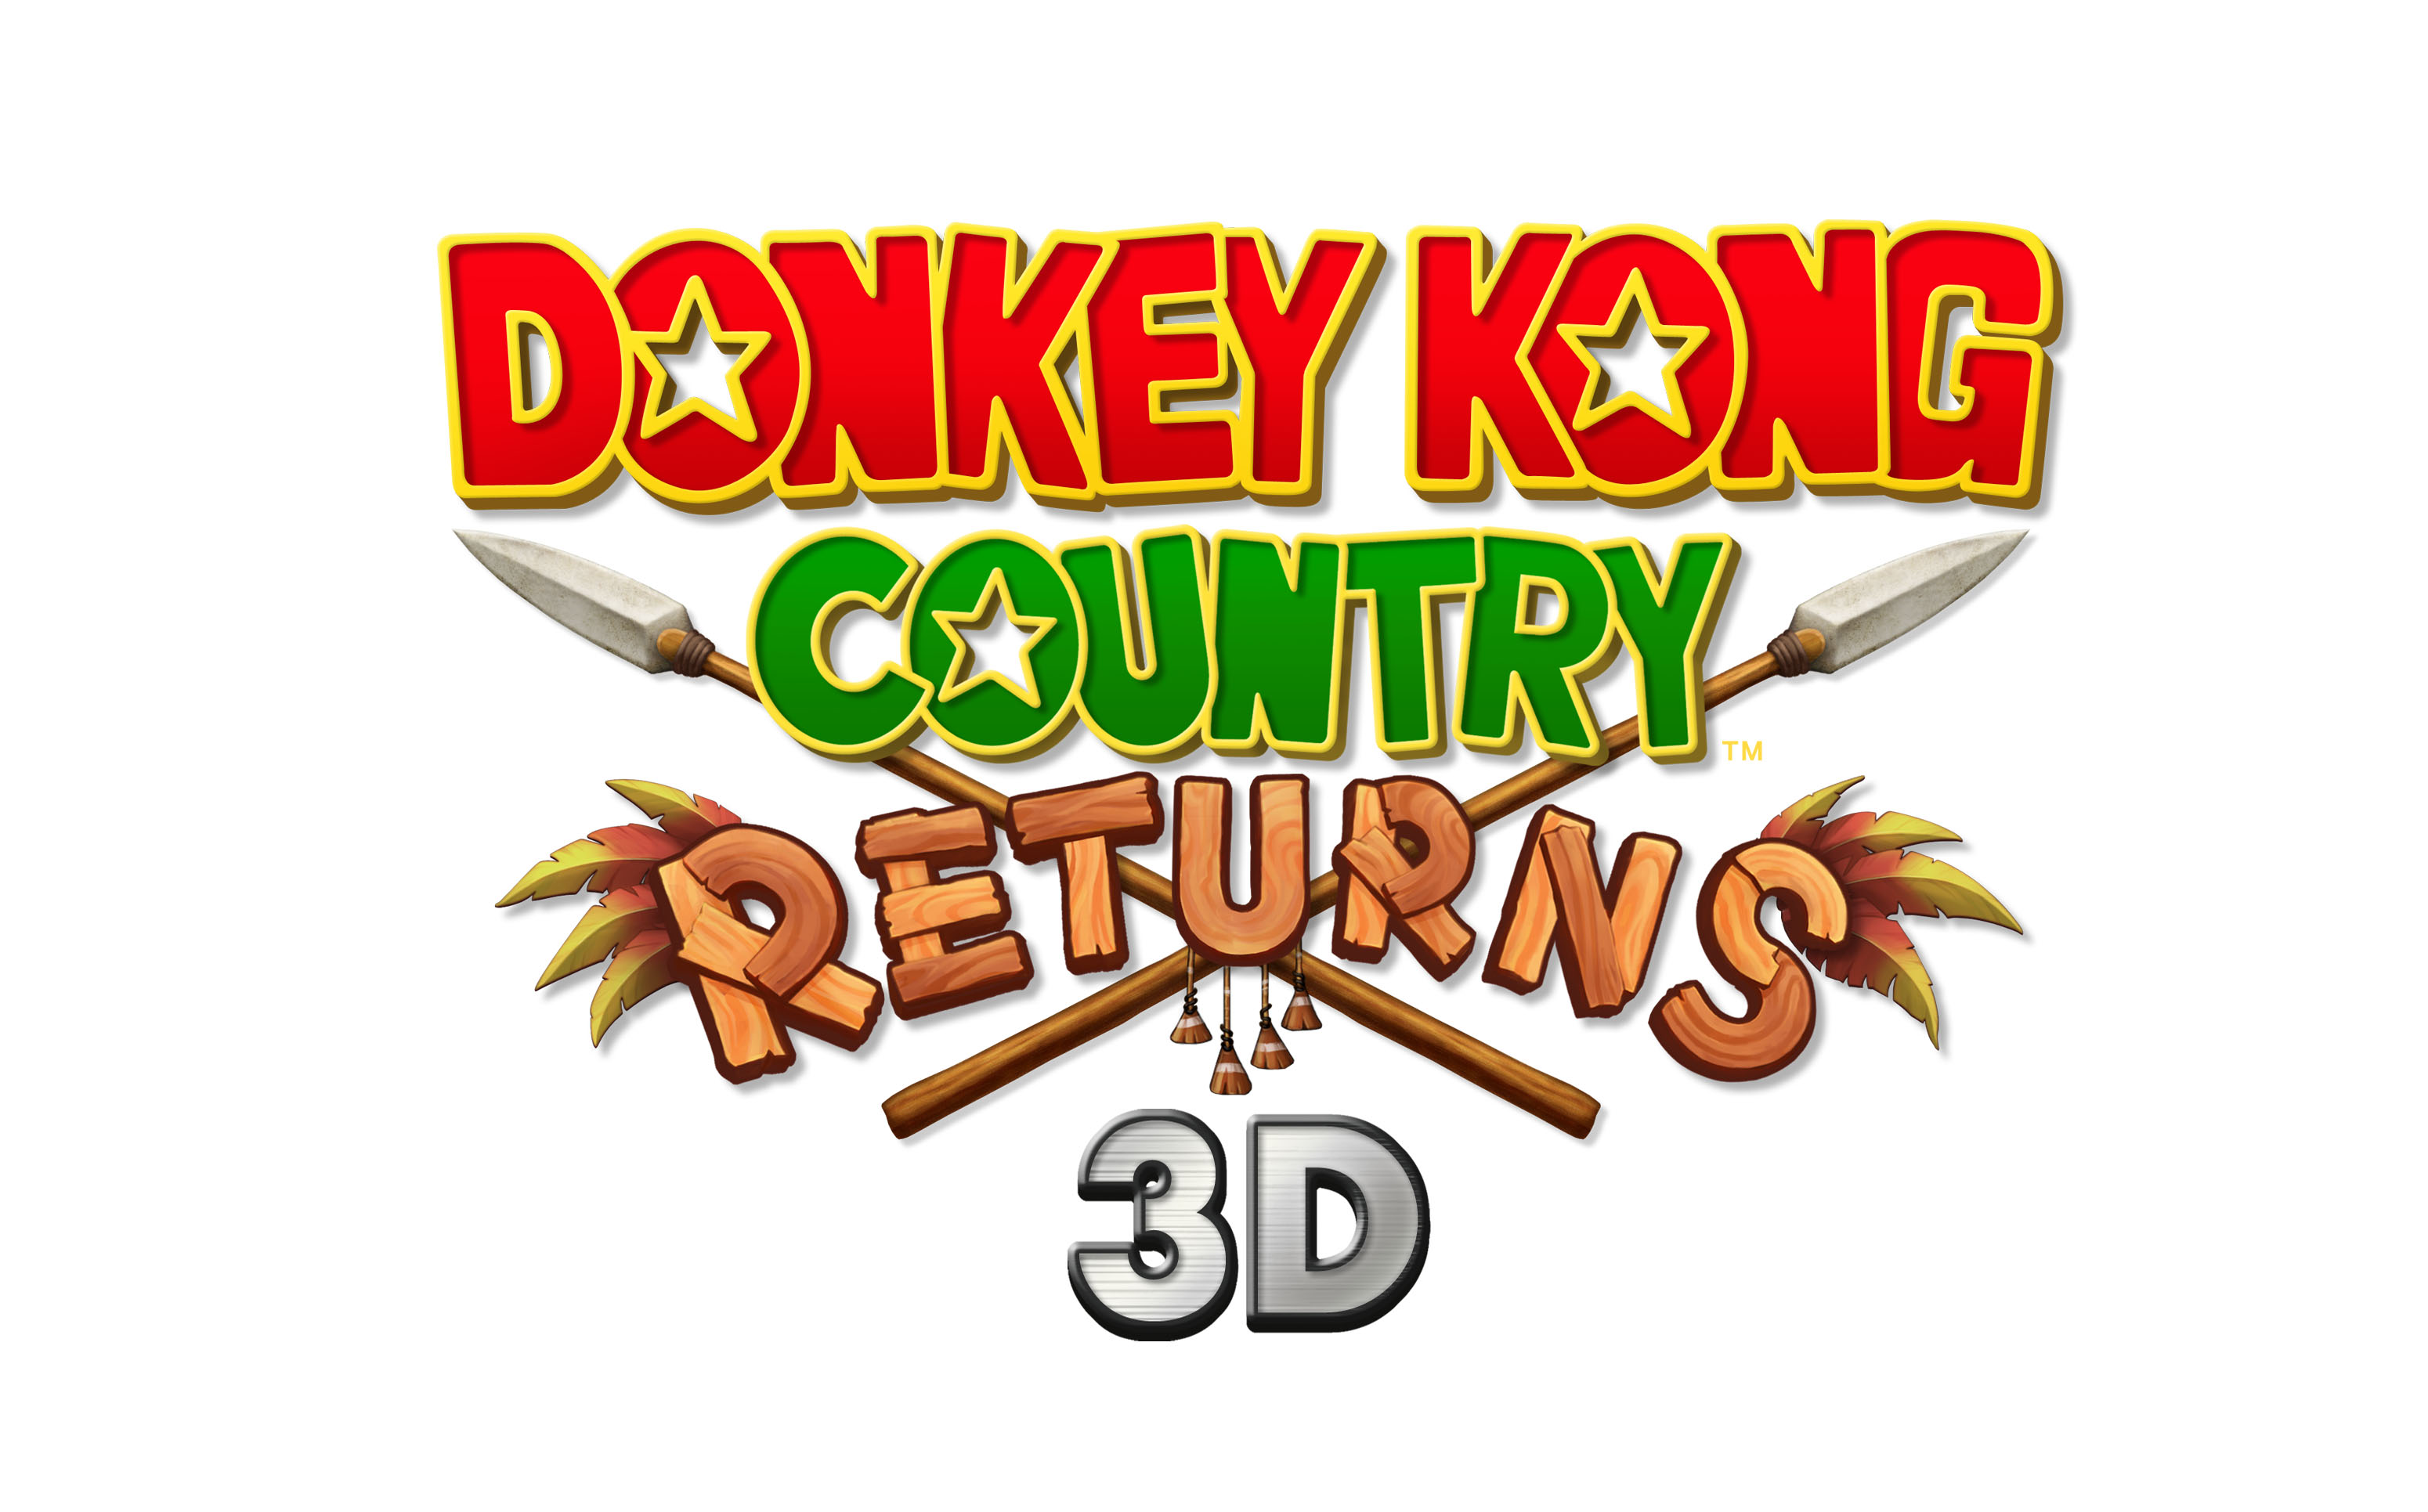 Donkey Kong Country Returns 3DS Is Slightly Different From Original Wii Version